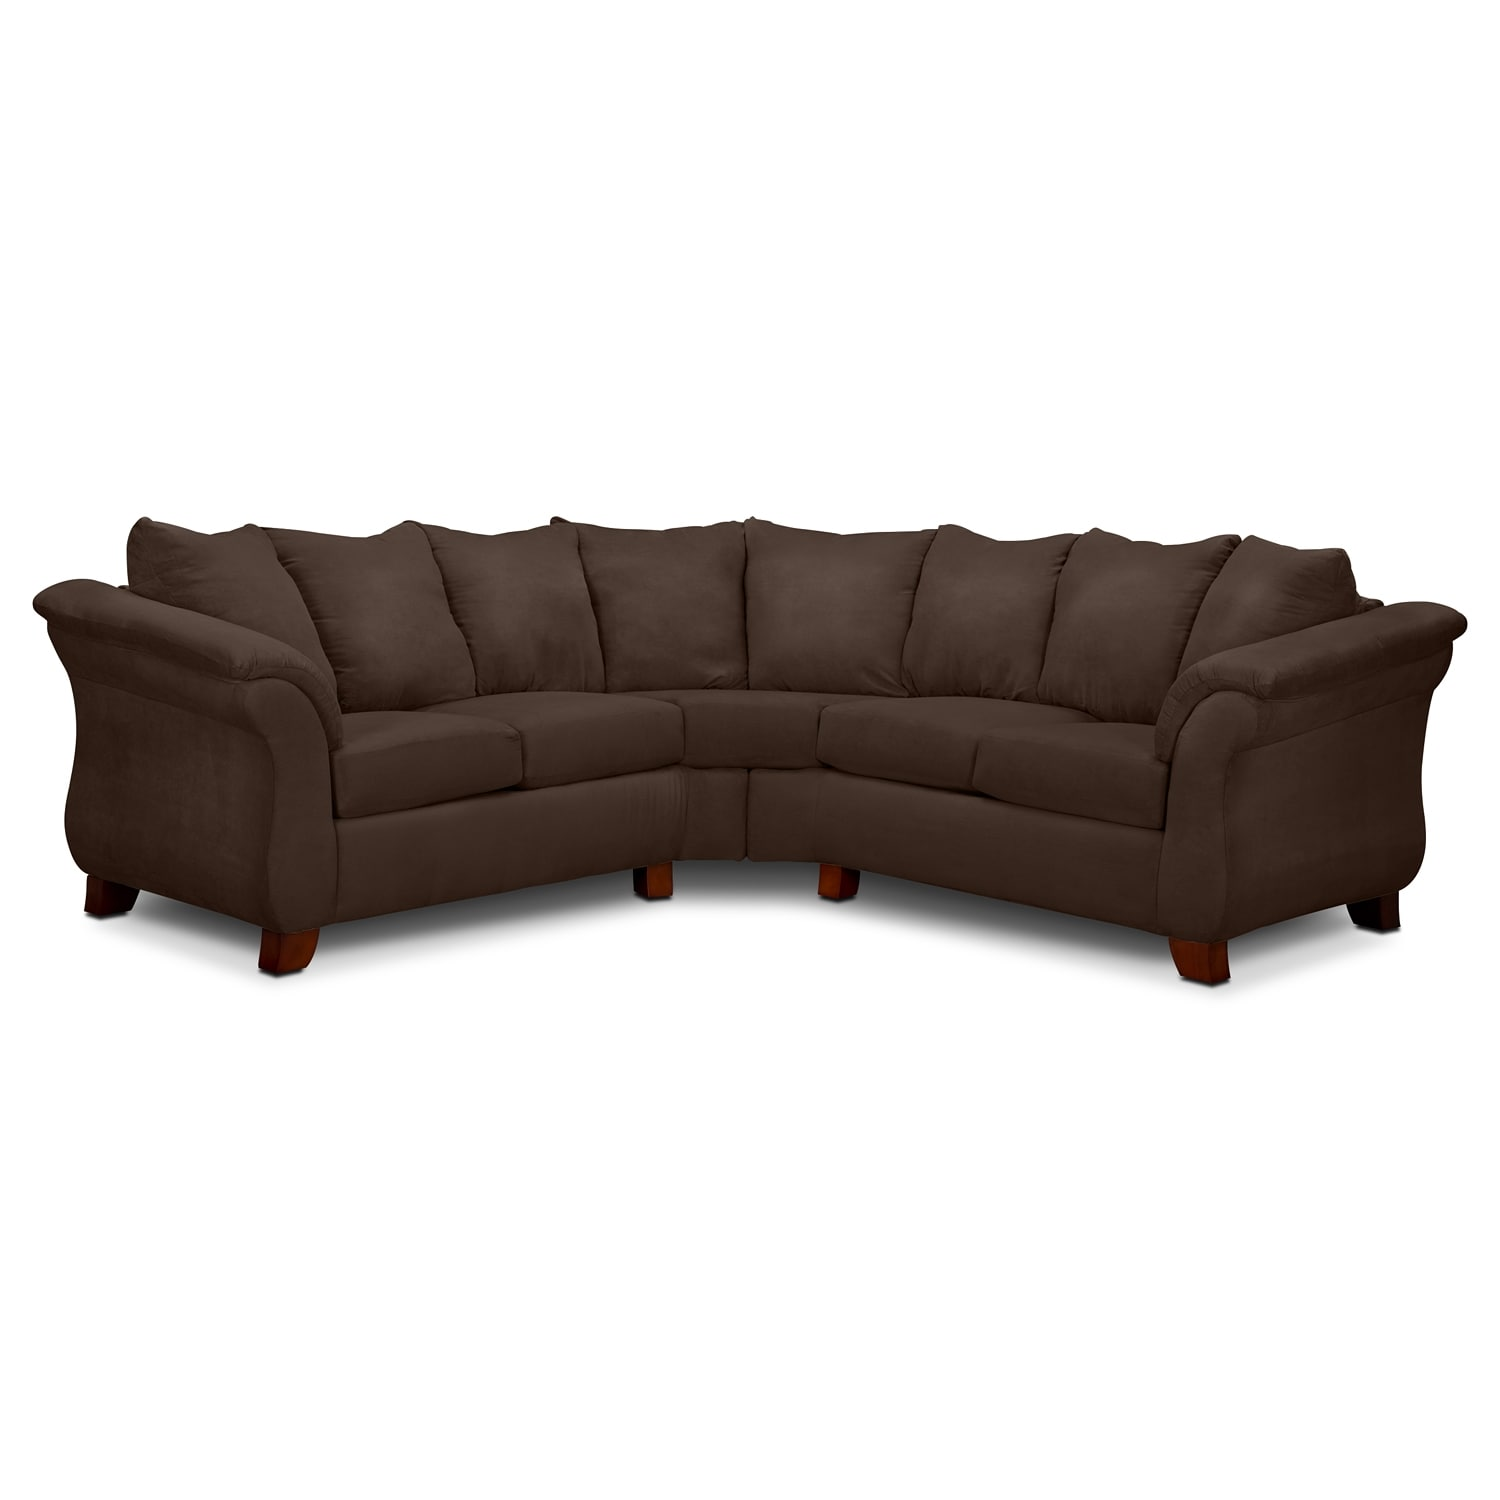 Adrian chocolate ii 2 pc sectional value city furniture for Sectional sofa mor furniture